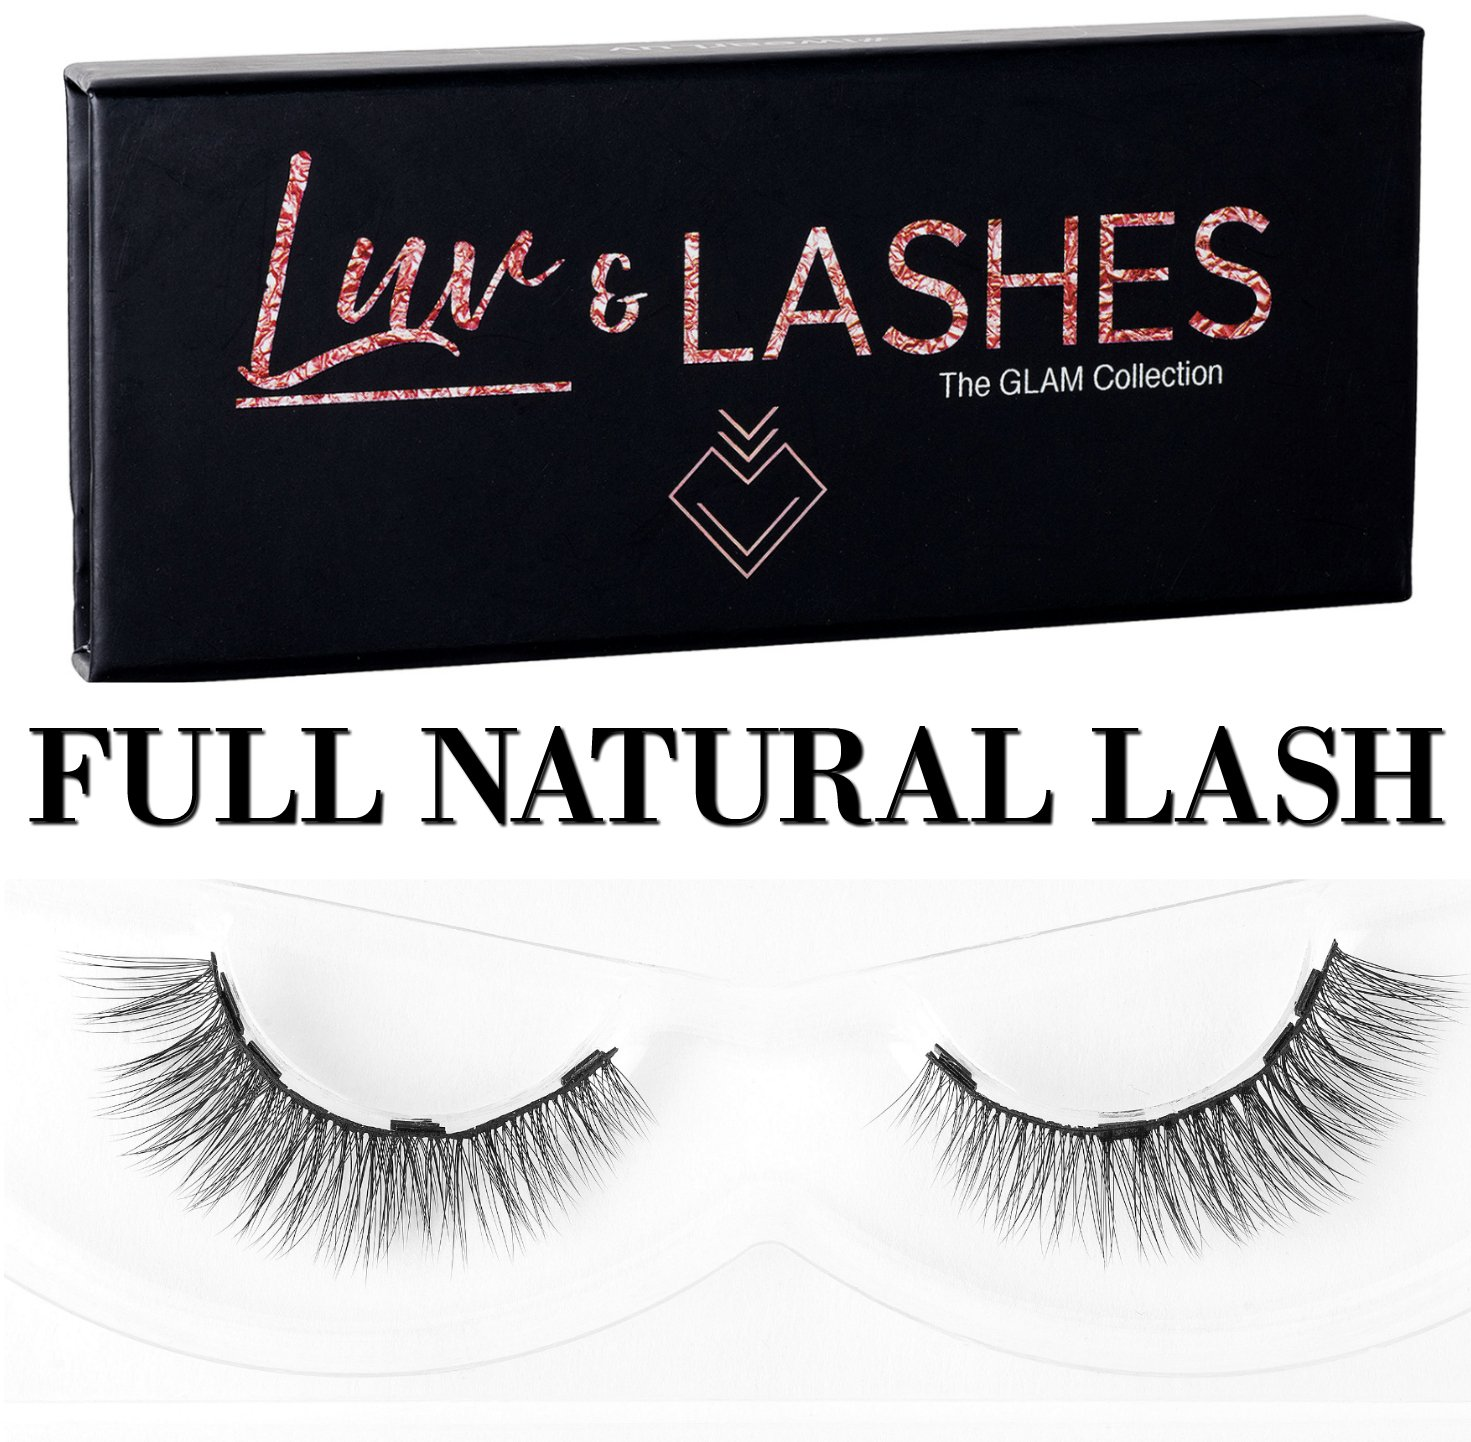 MAGNETIC EYELASHES | Magnetic Lashes | Magnetic False Eyelashes | similar Ardell Magnetic Eyelashes | Ebook from Luvlashes storefront ''All you need to know about LuvLashes by LuvLashes storefront''